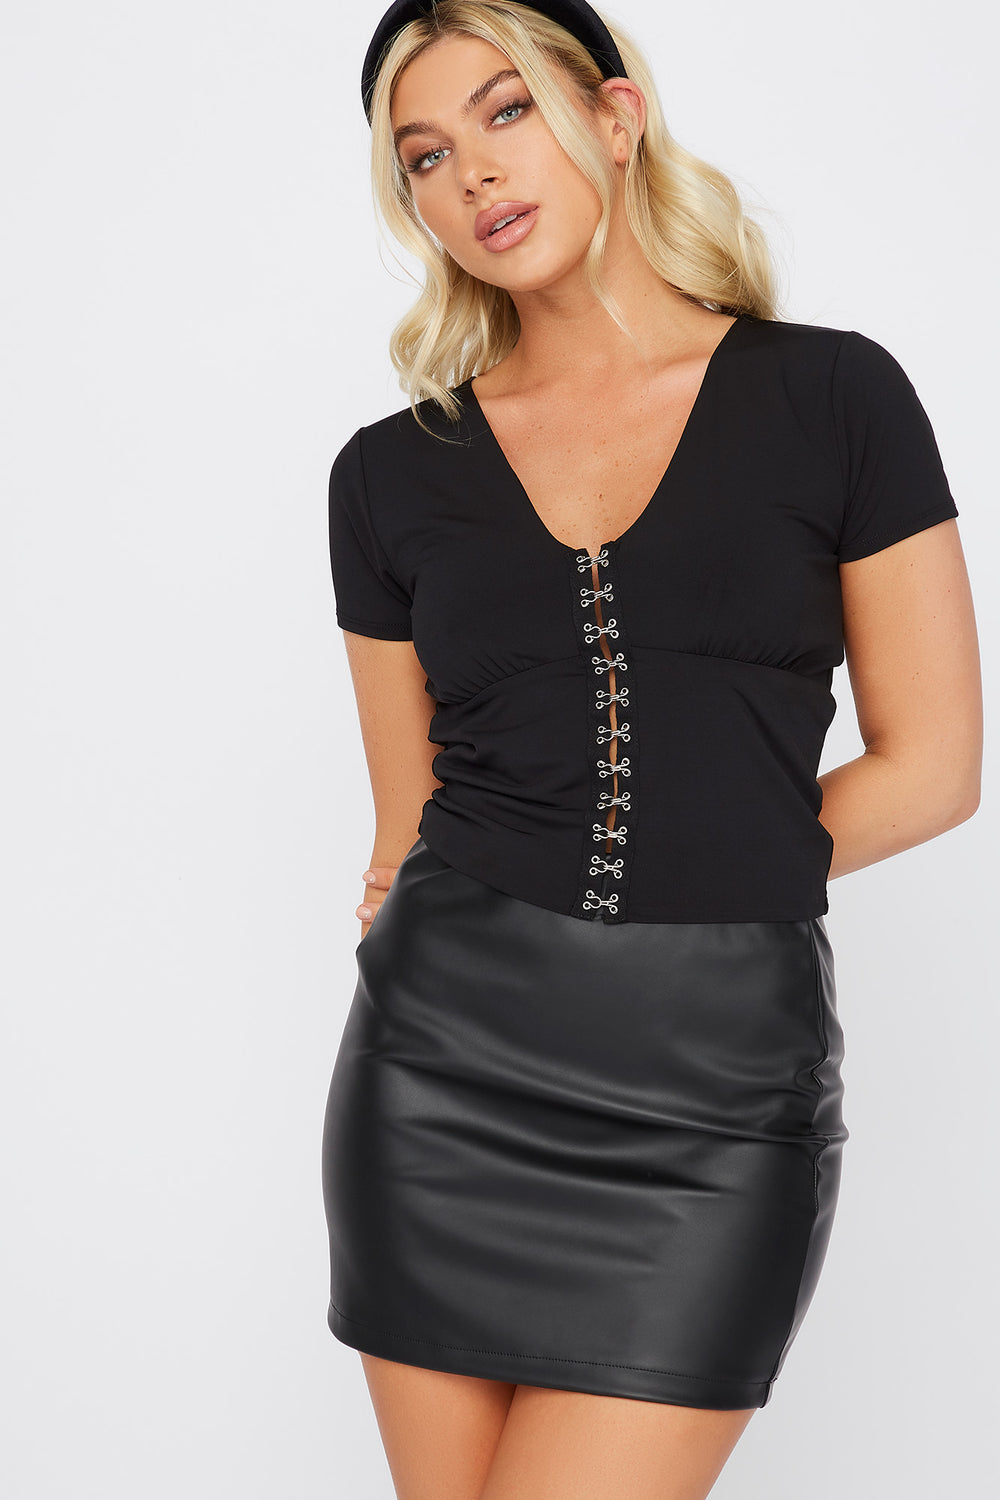 V-Neck Hook And Eye Short Sleeve Top Black